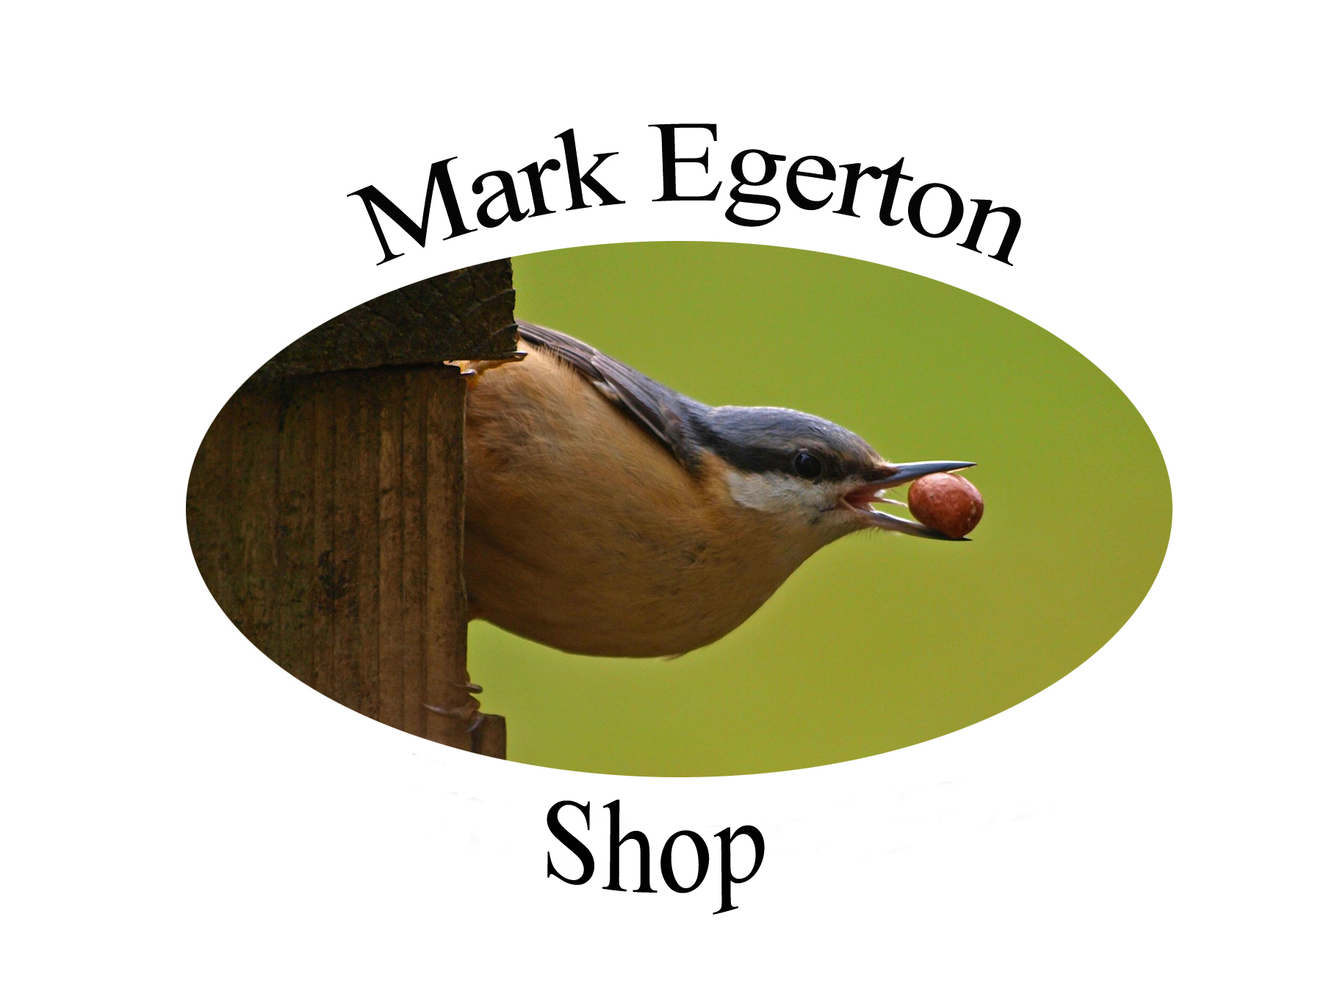 The Mark Egerton Shop